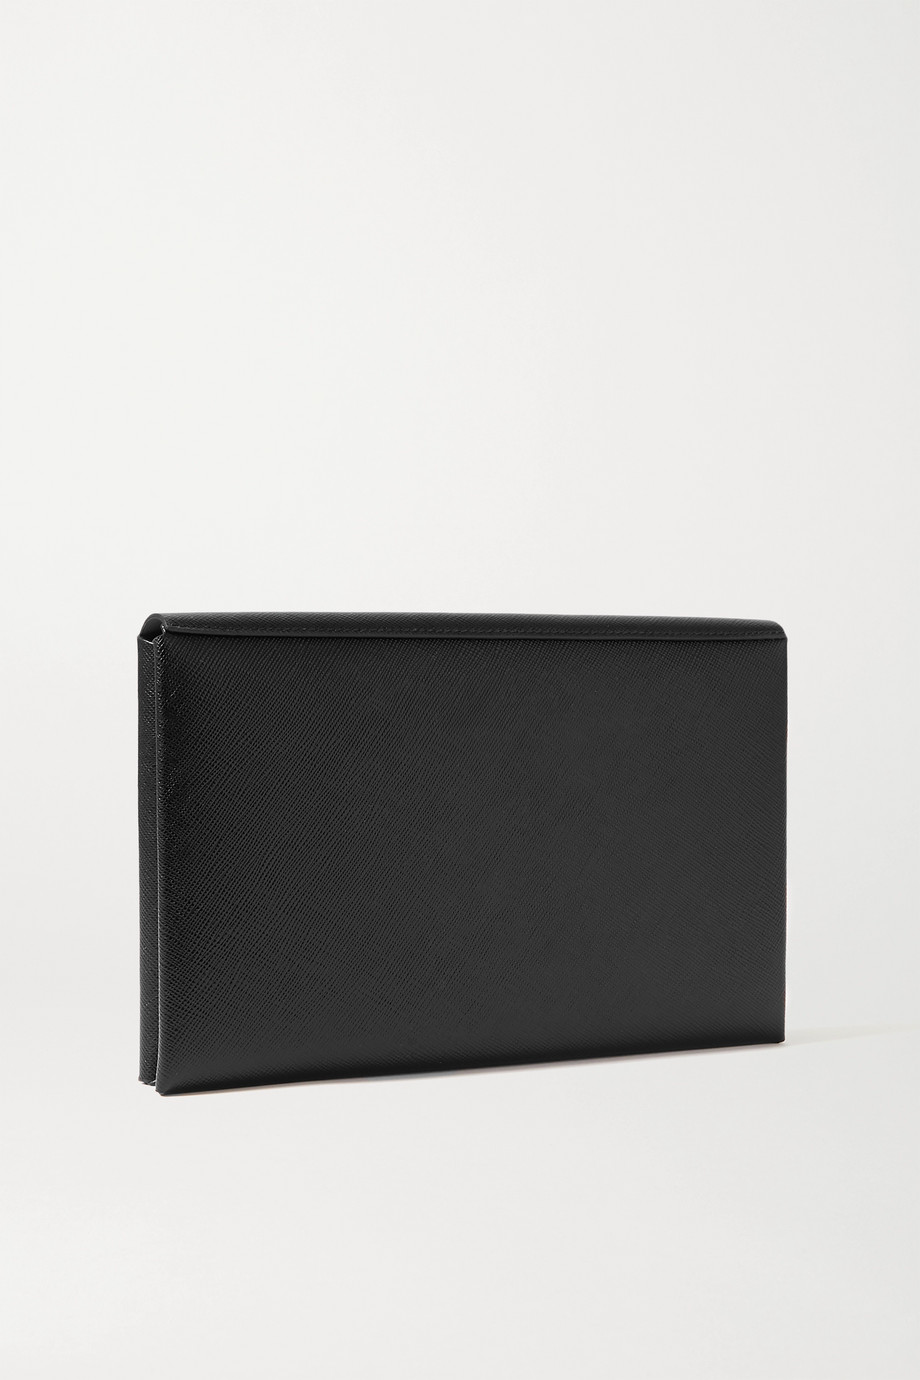 Prada Textured-leather travel wallet